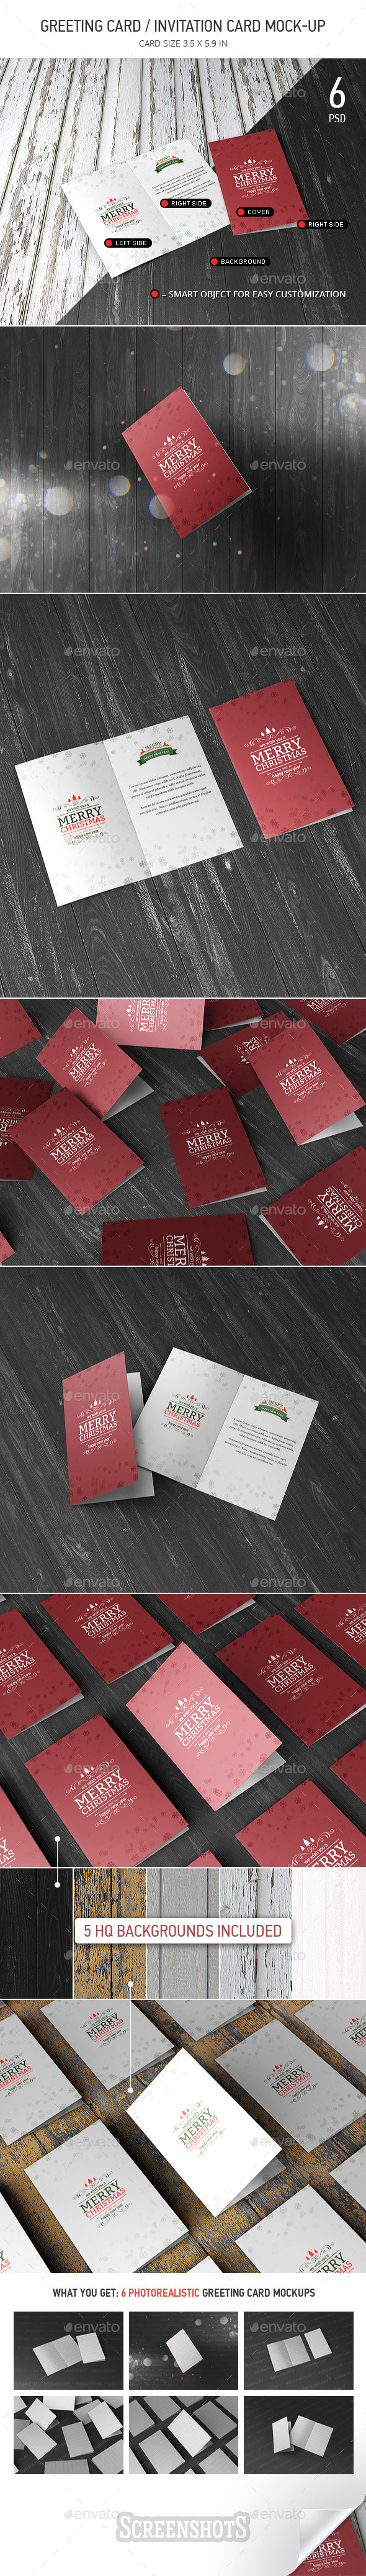 GraphicRiver Greeting Invitation Card Mock-Up 9809182